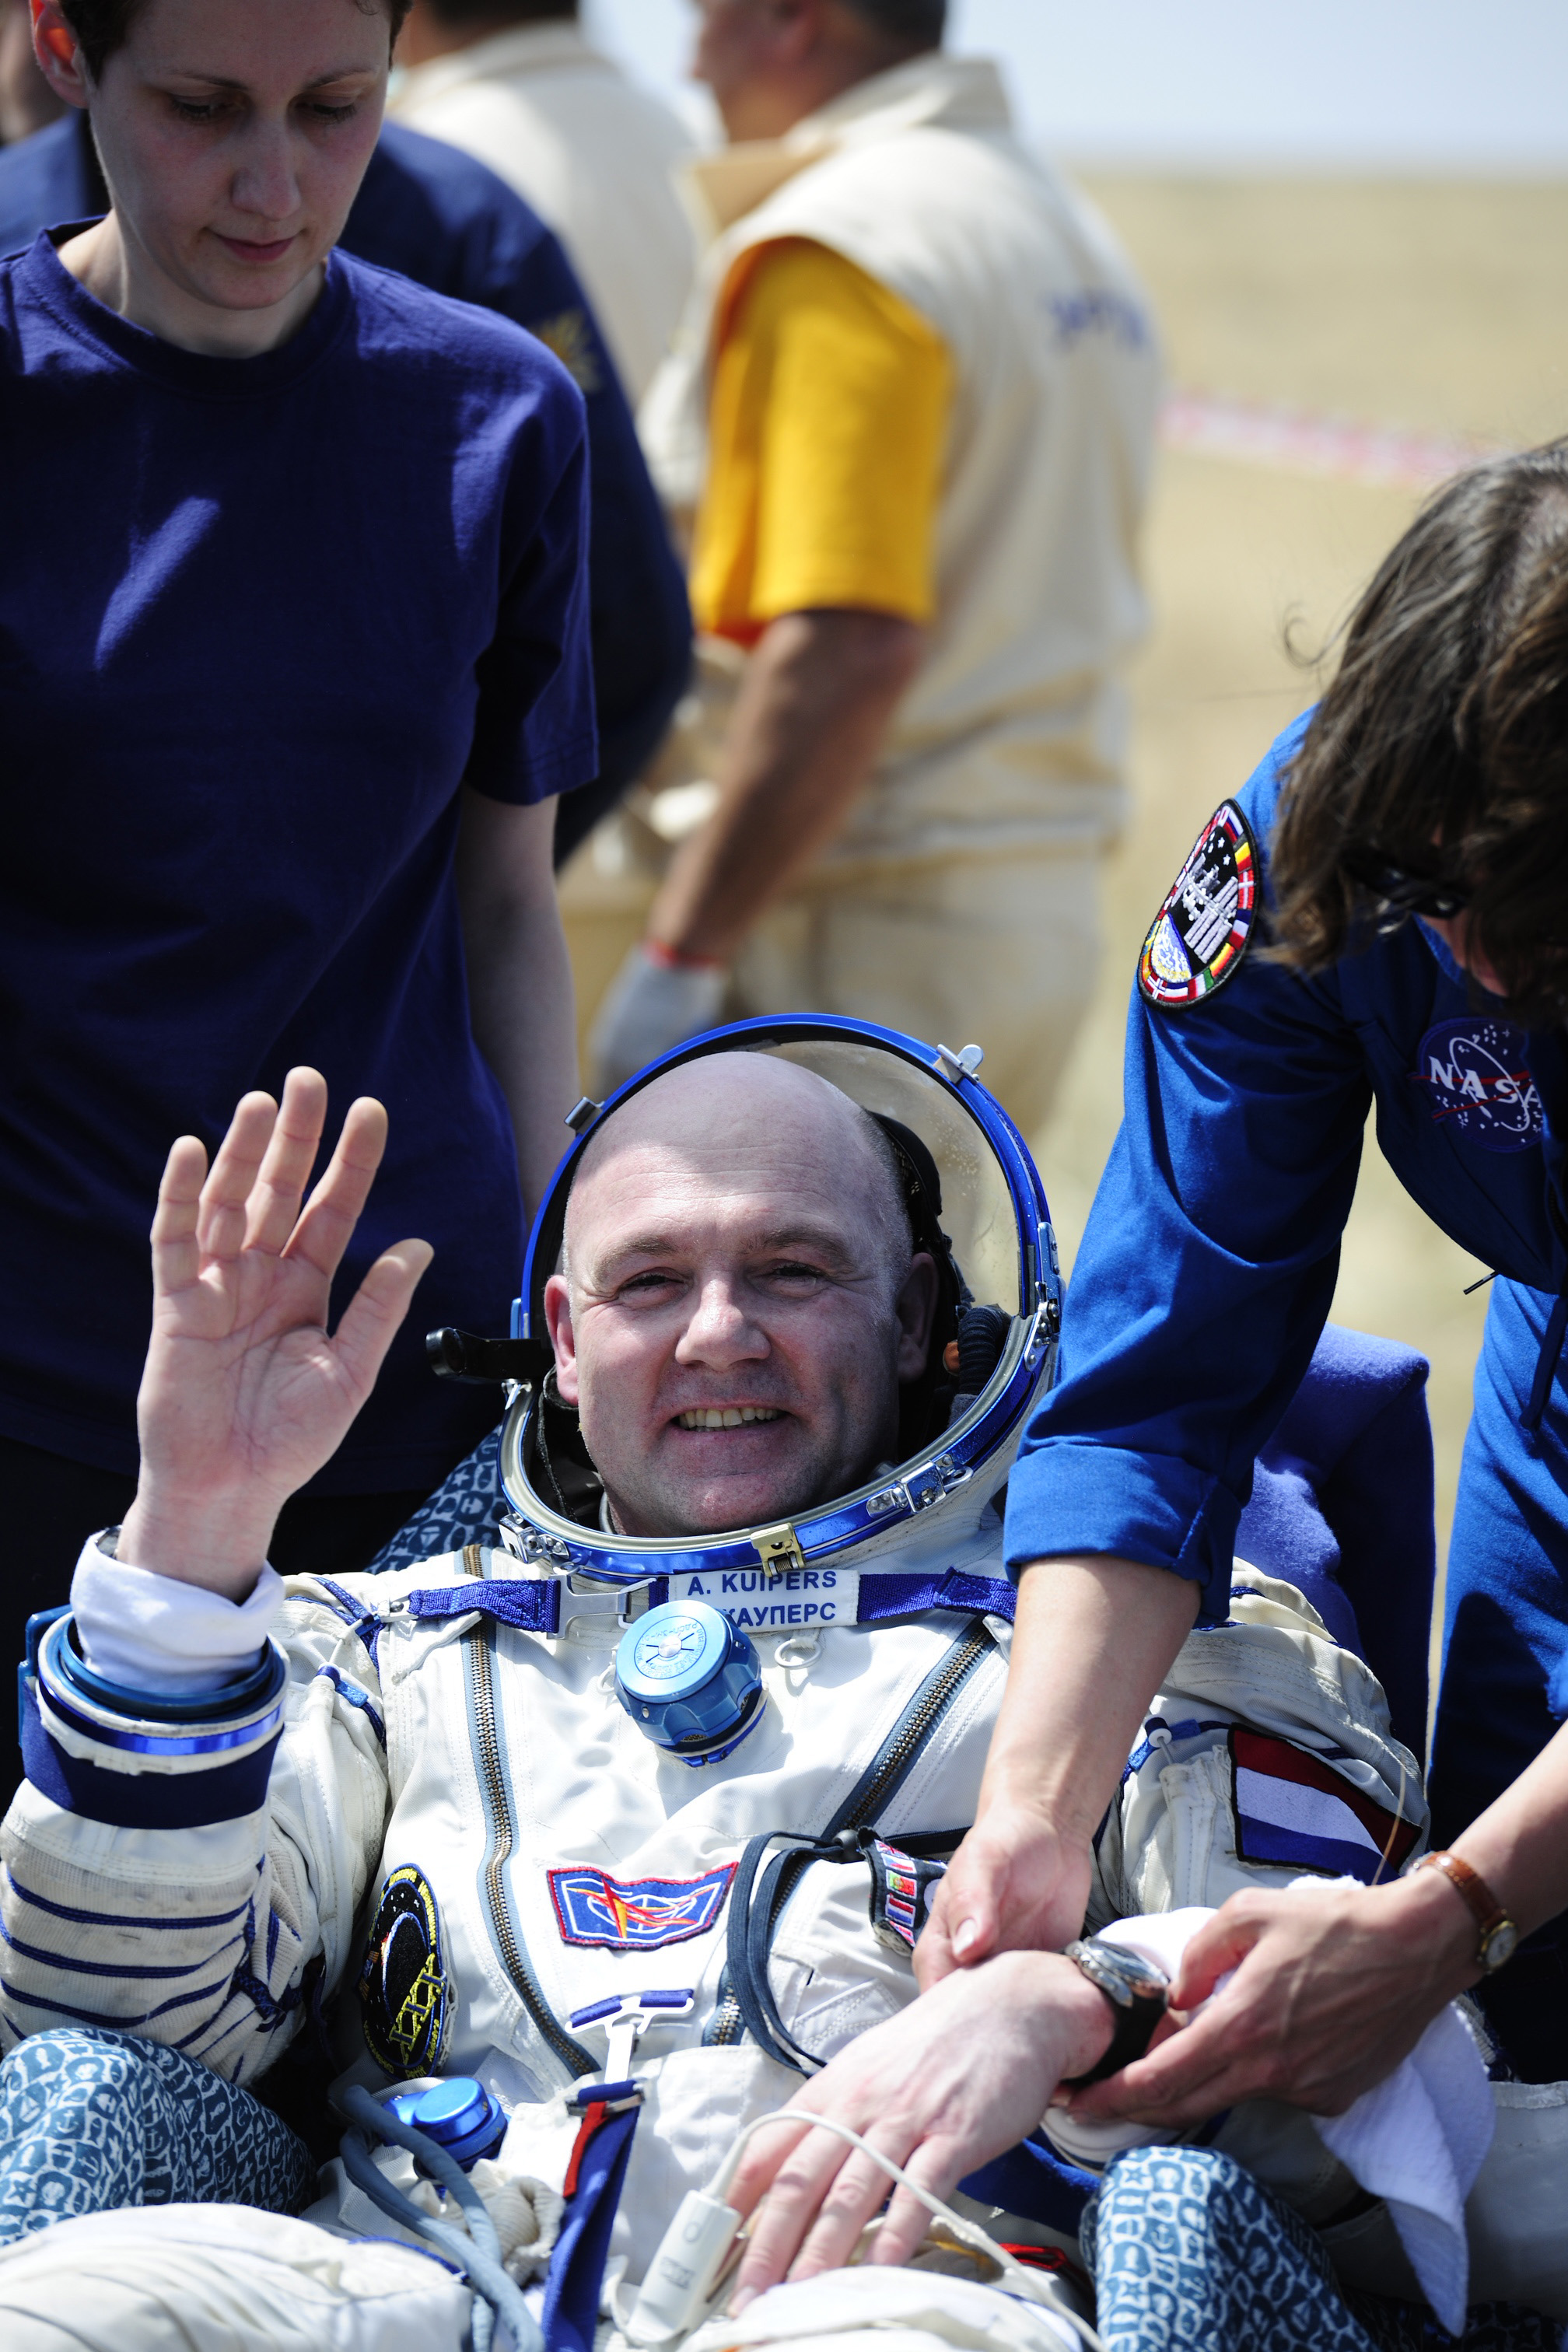 Expedition 31 Crew Landing: @Astro_Andre